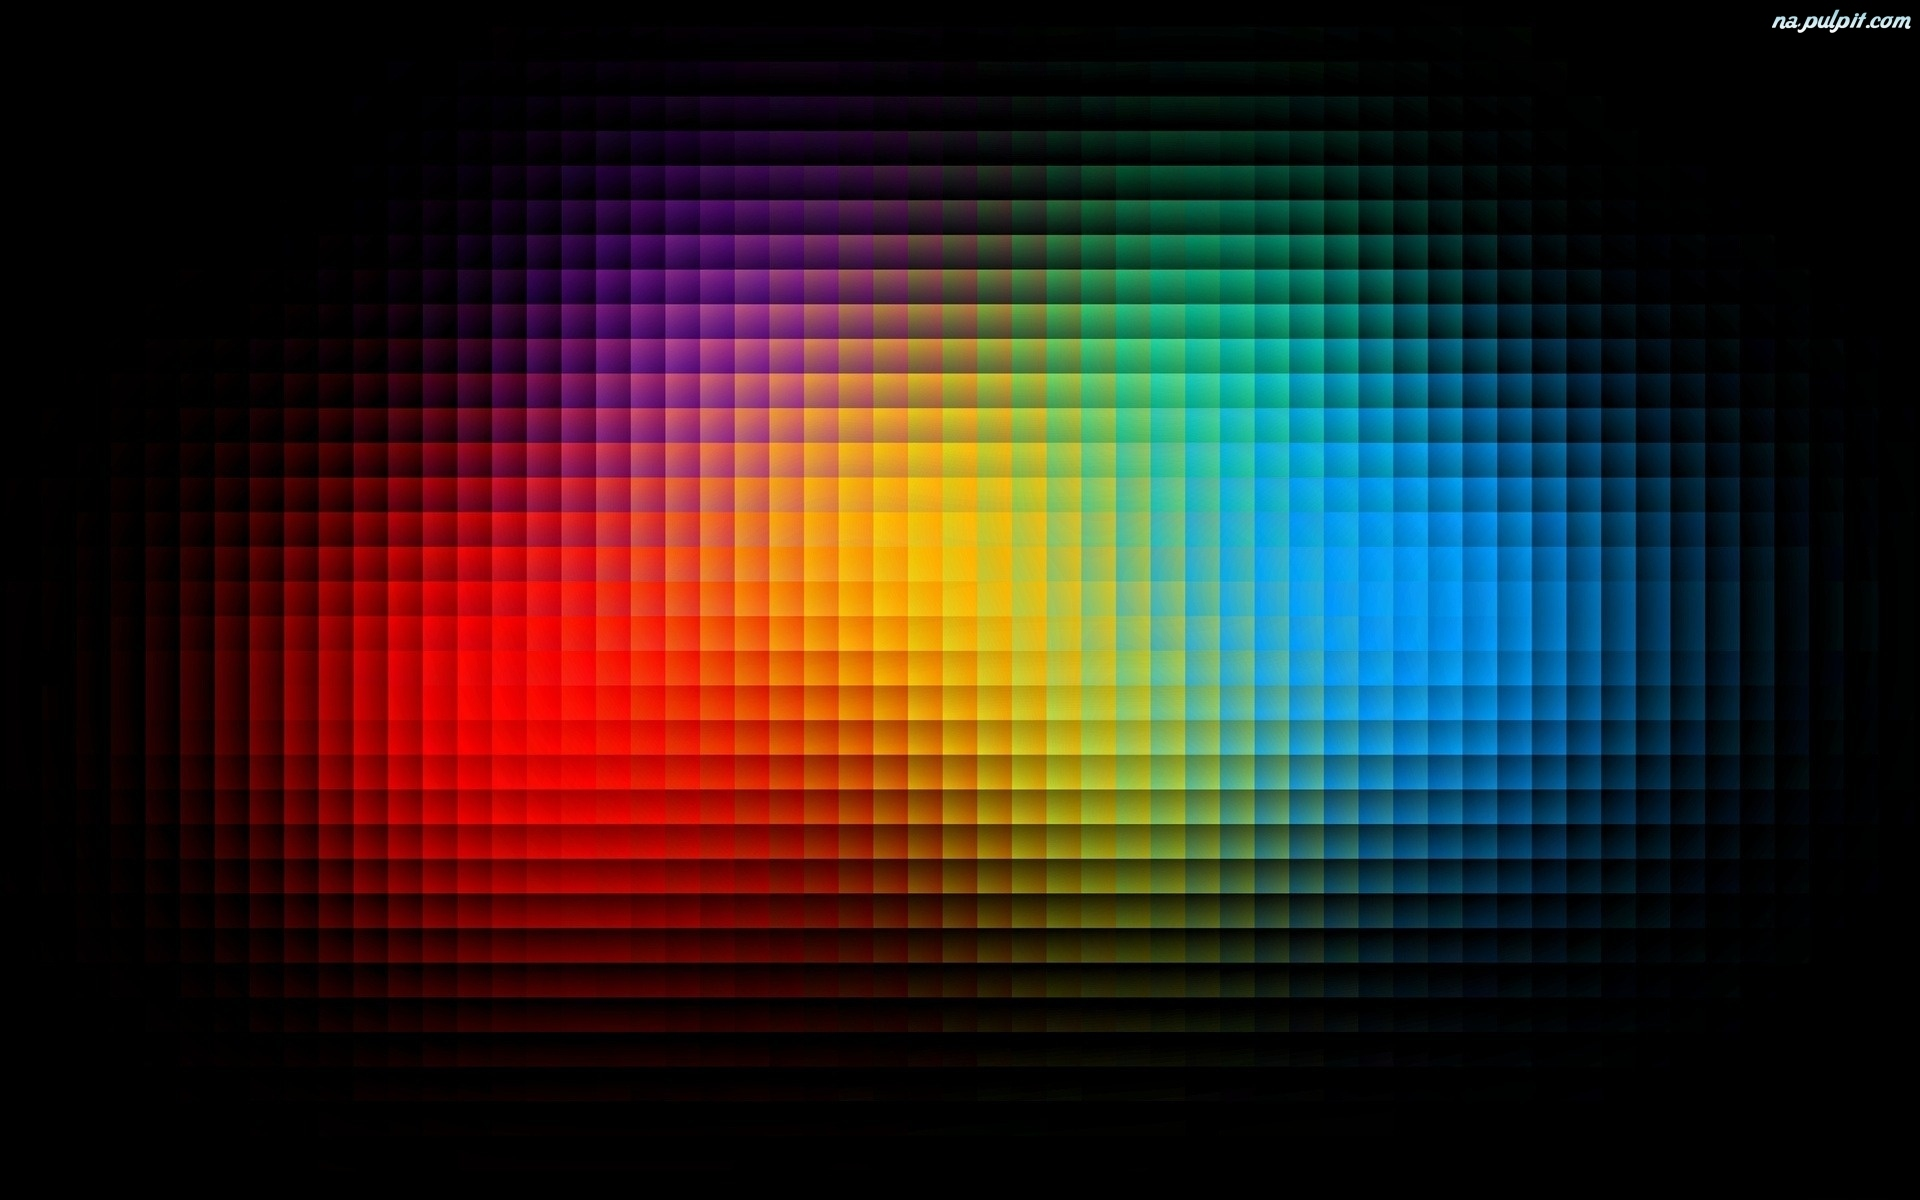 pixel rainbow wallpaper google - photo #18